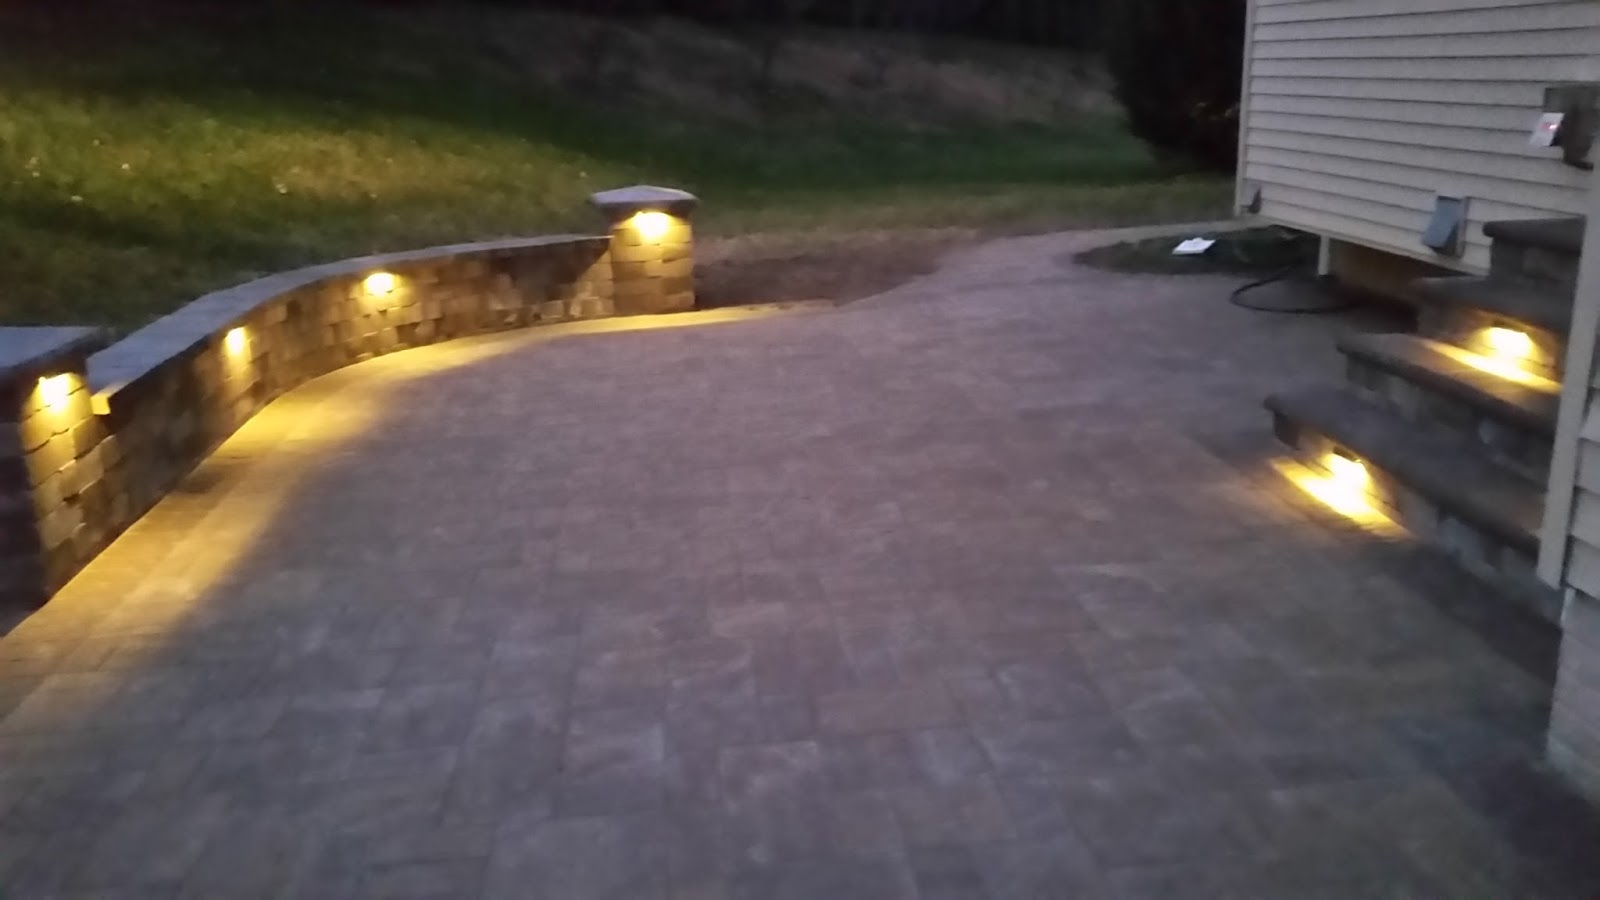 Retaining Wall Lights Low Voltage : Custom Stoneworks & Design Inc.: Low Voltage Lighting Patio. Baltimore, Annapolis, Howard County